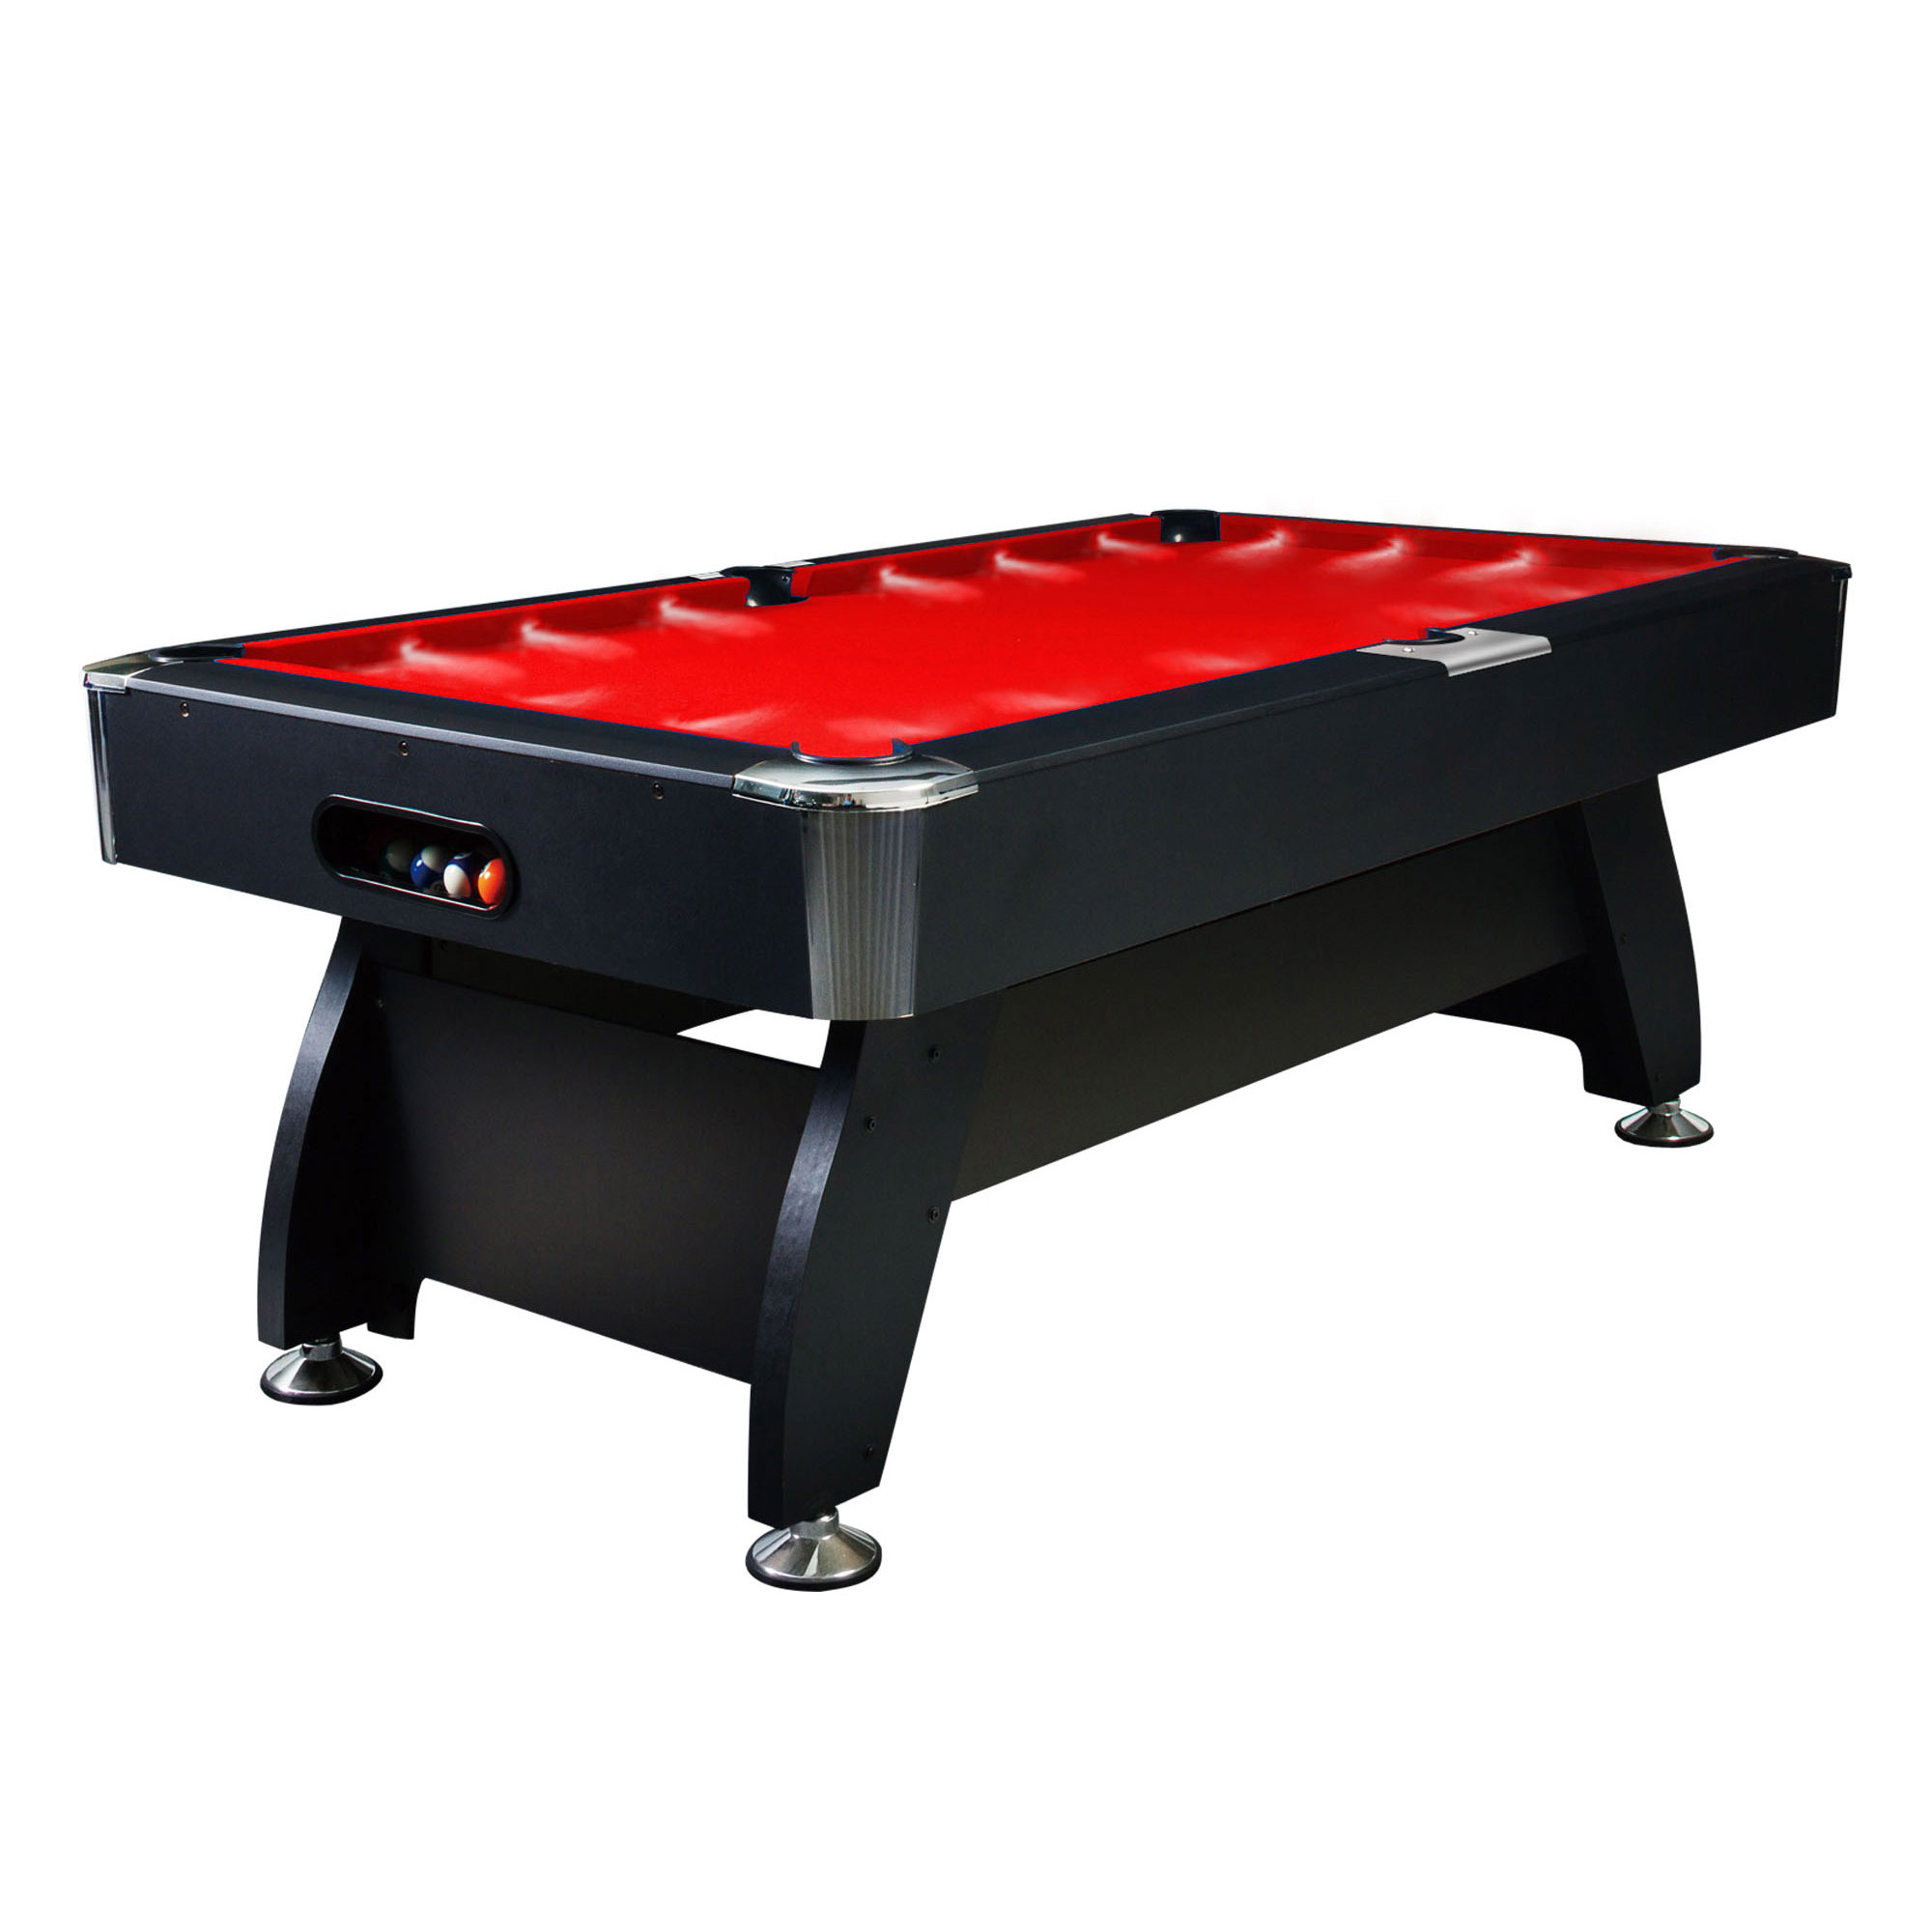 8FT RED TIMBER MDF POOL SNOOKER BILLIARD TABLE LED